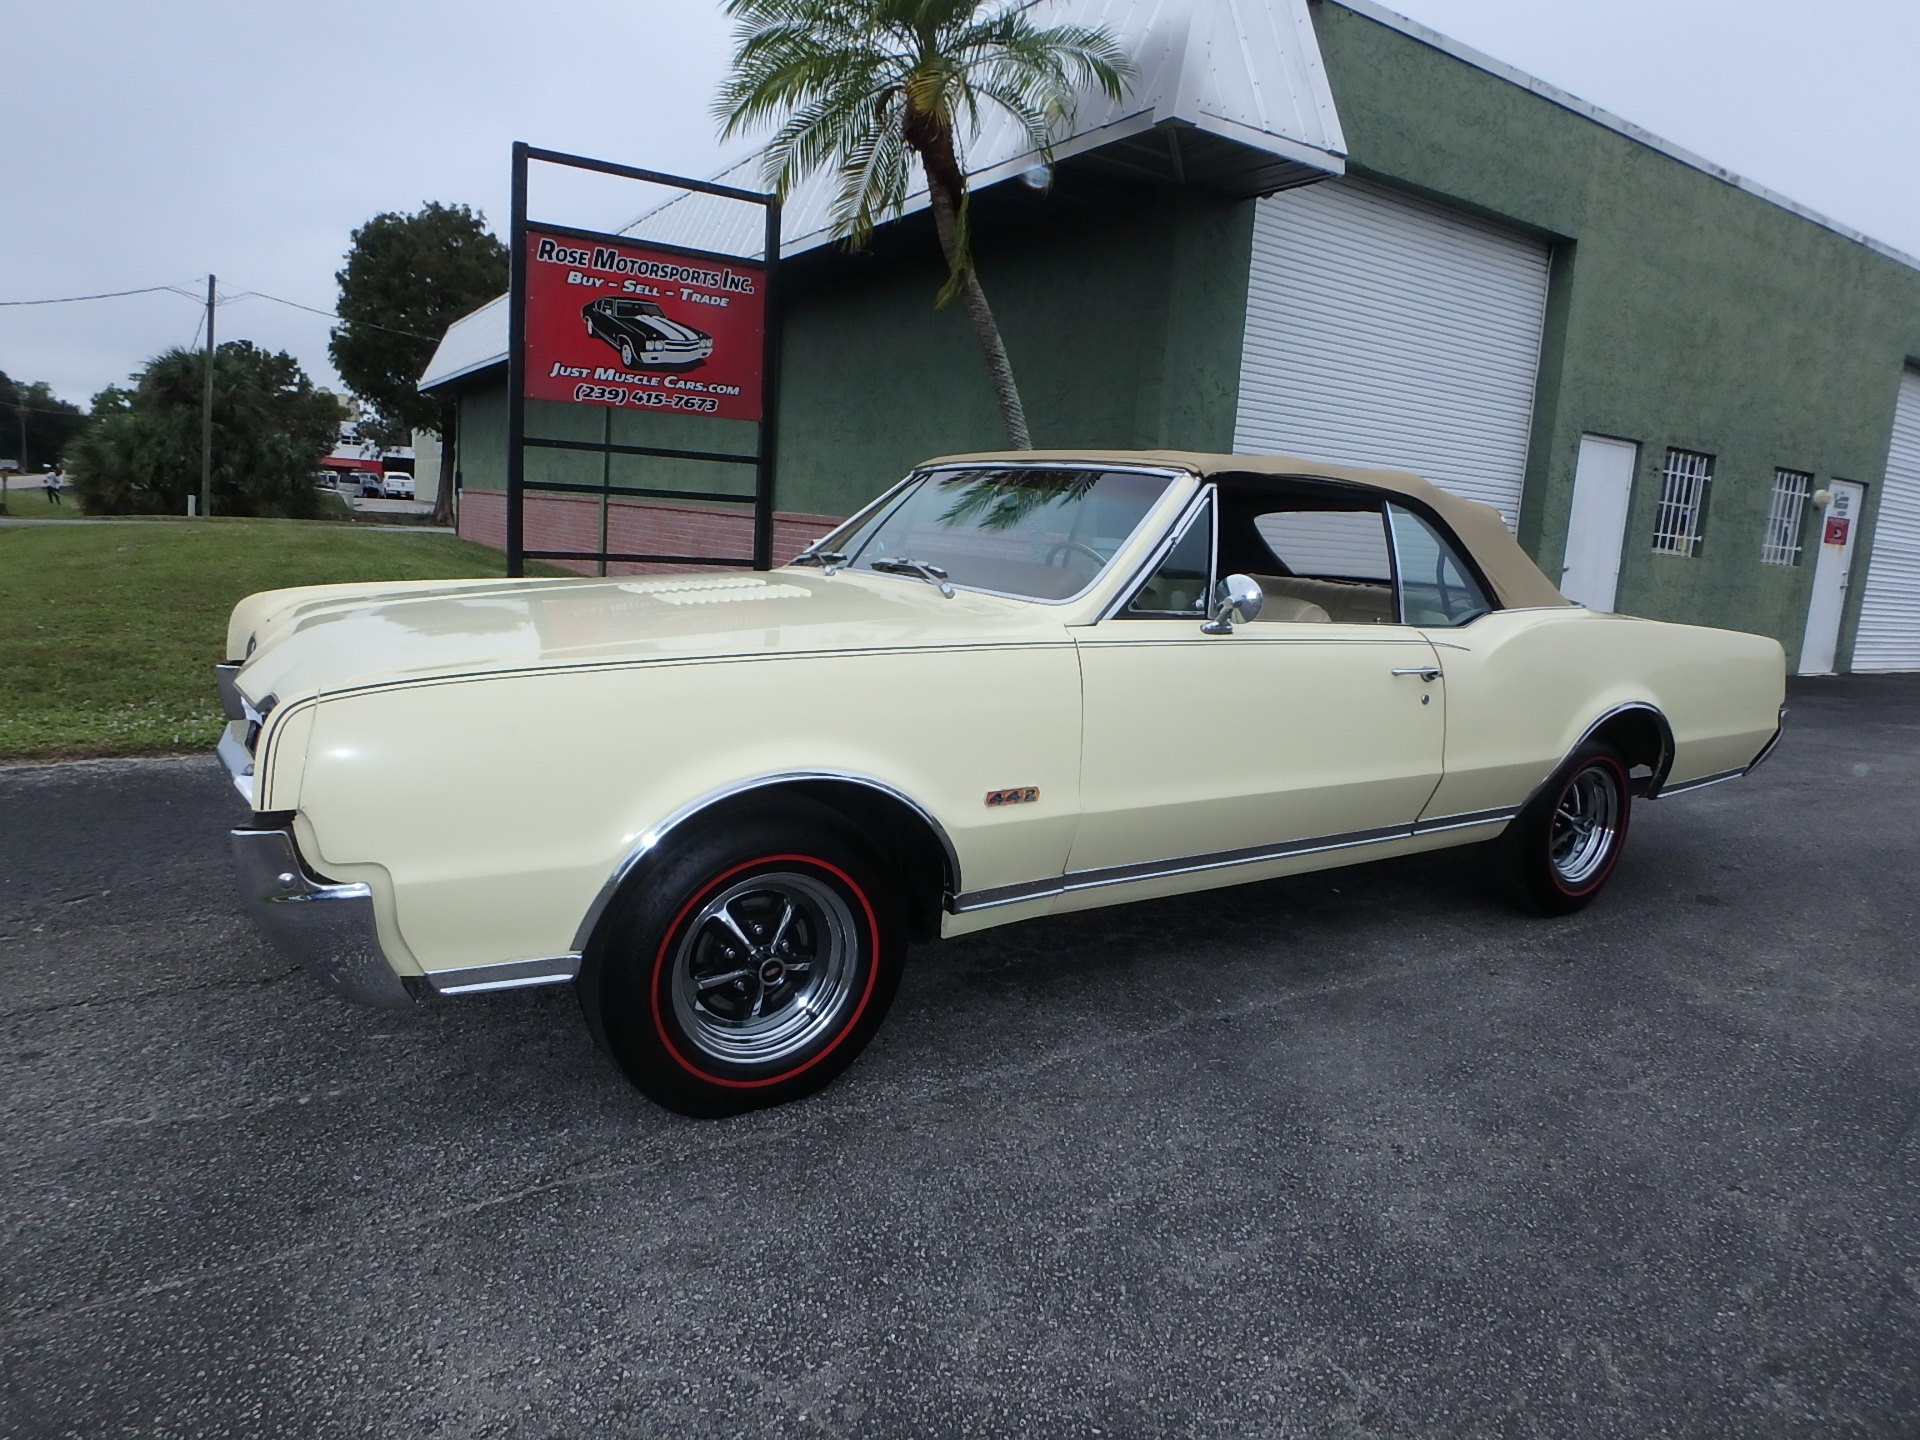 Used 1967 Olds 442 Convertible